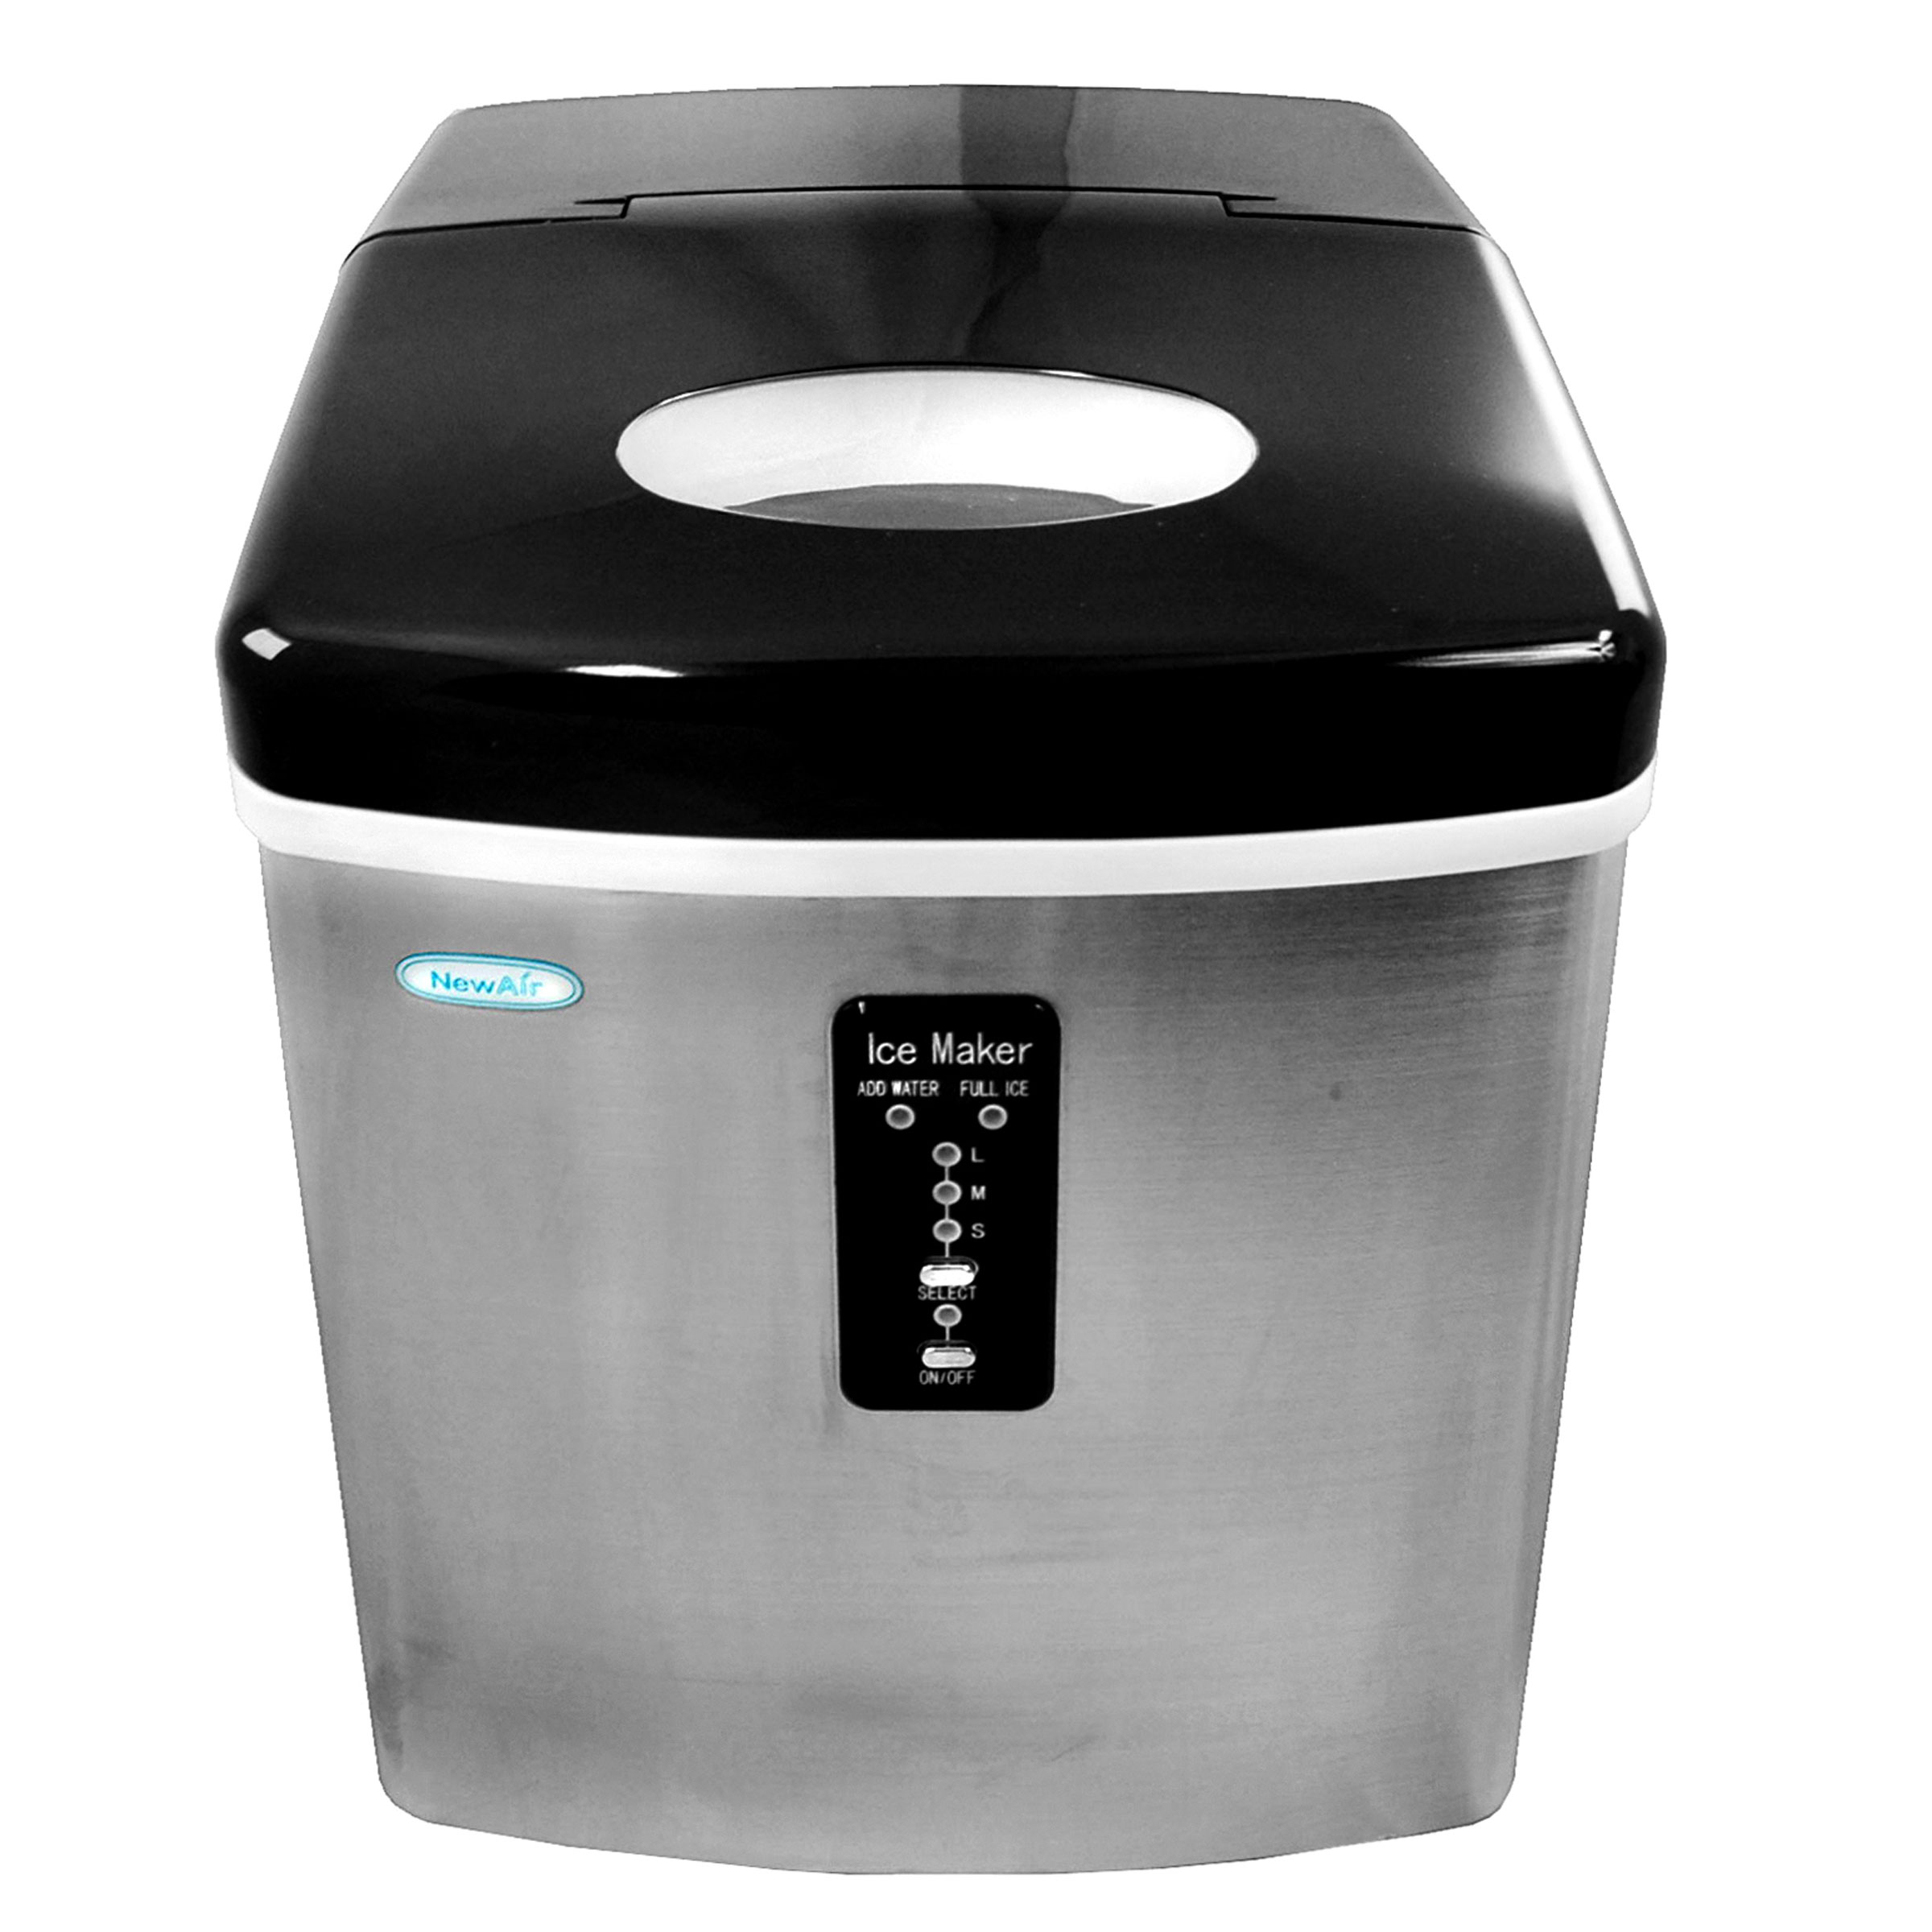 NEWAIR AI-100SS Portable Stainless Steel Ice Maker 28 lbs/day